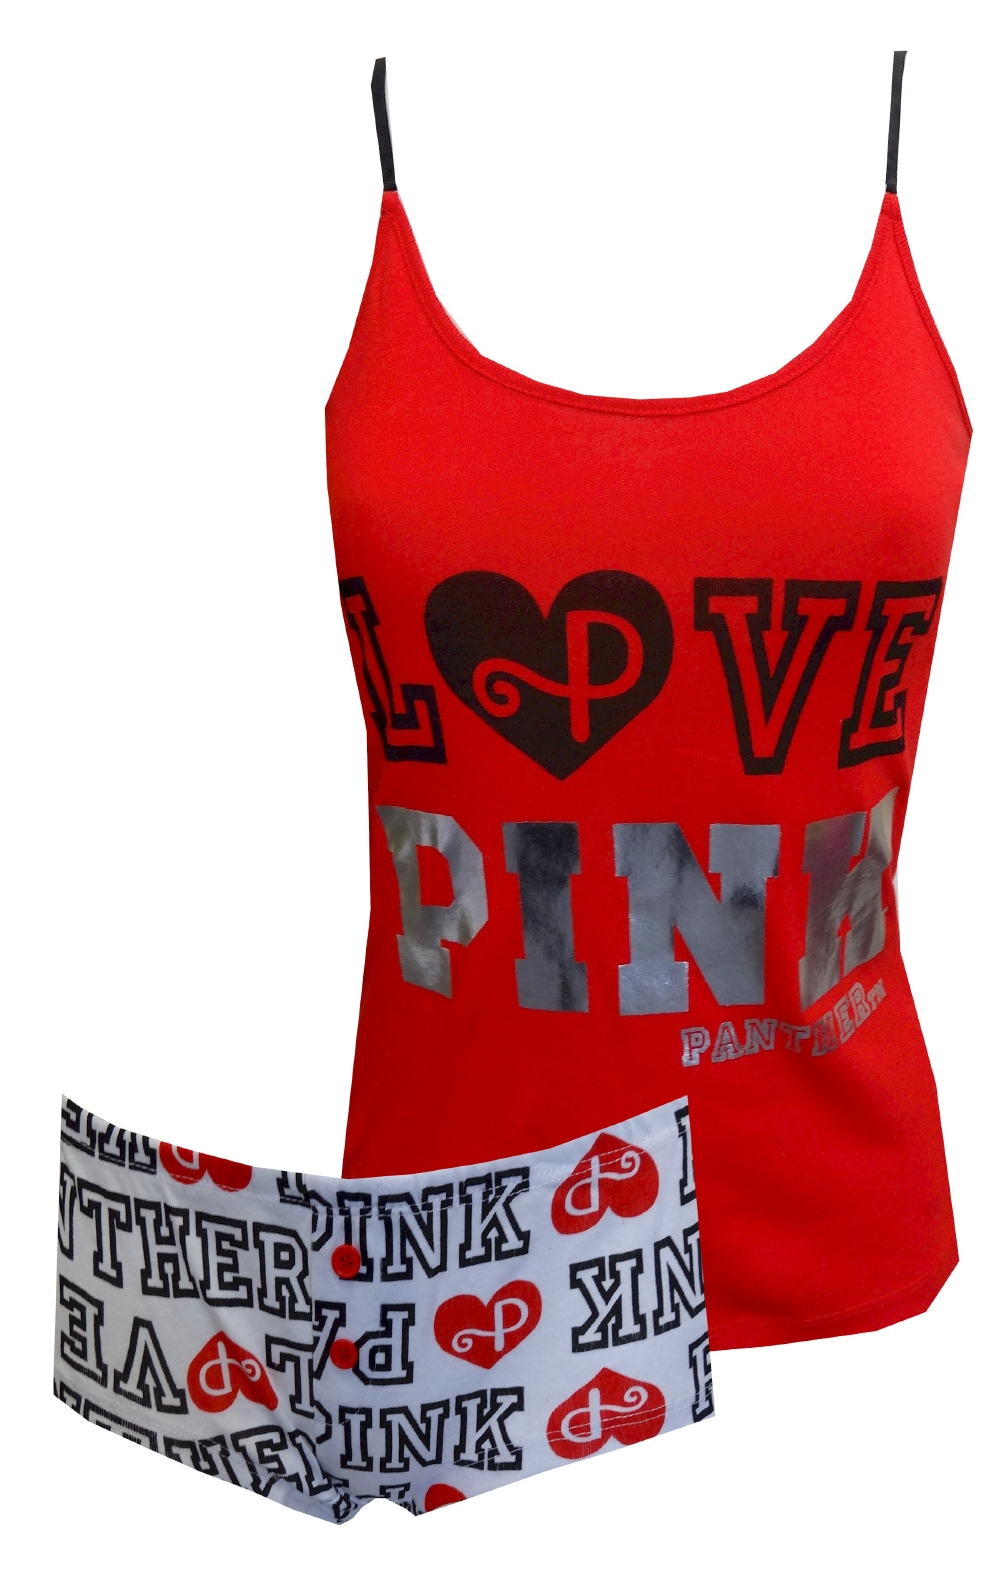 LOVE PINK Panther Red Hot Shortie Pajama for women